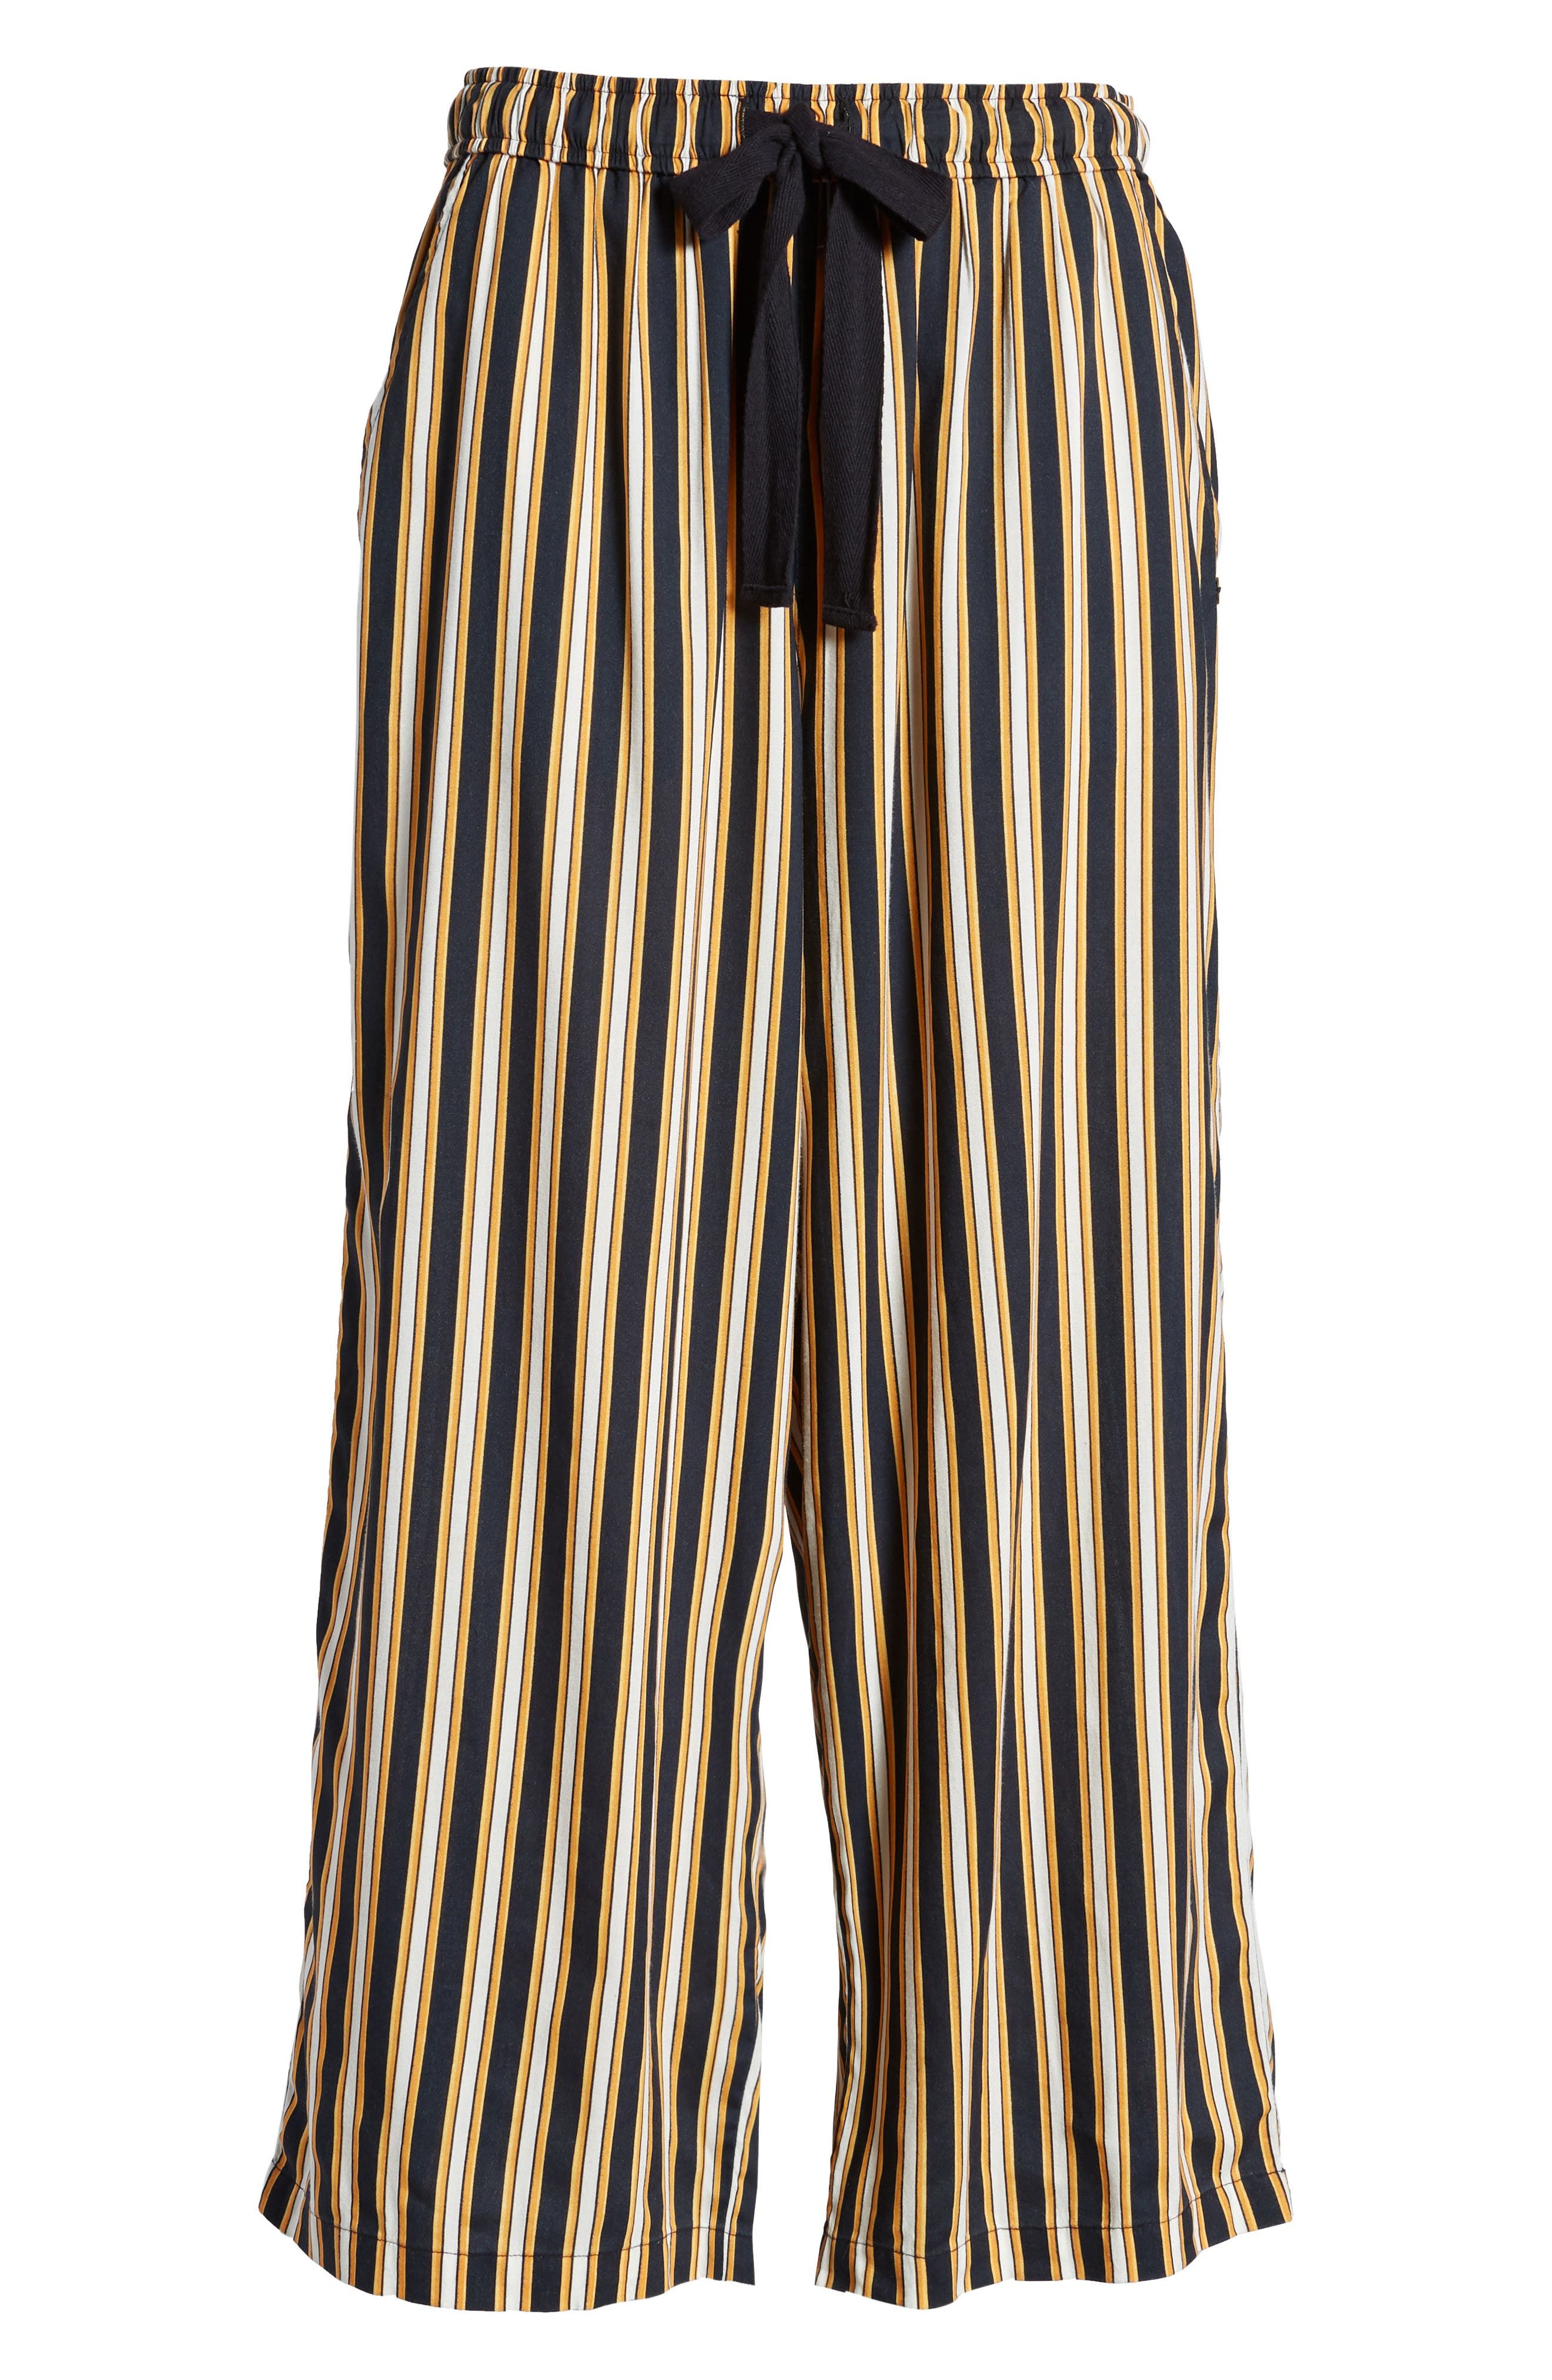 Stoney Stripe Pants,                             Alternate thumbnail 7, color,                             414